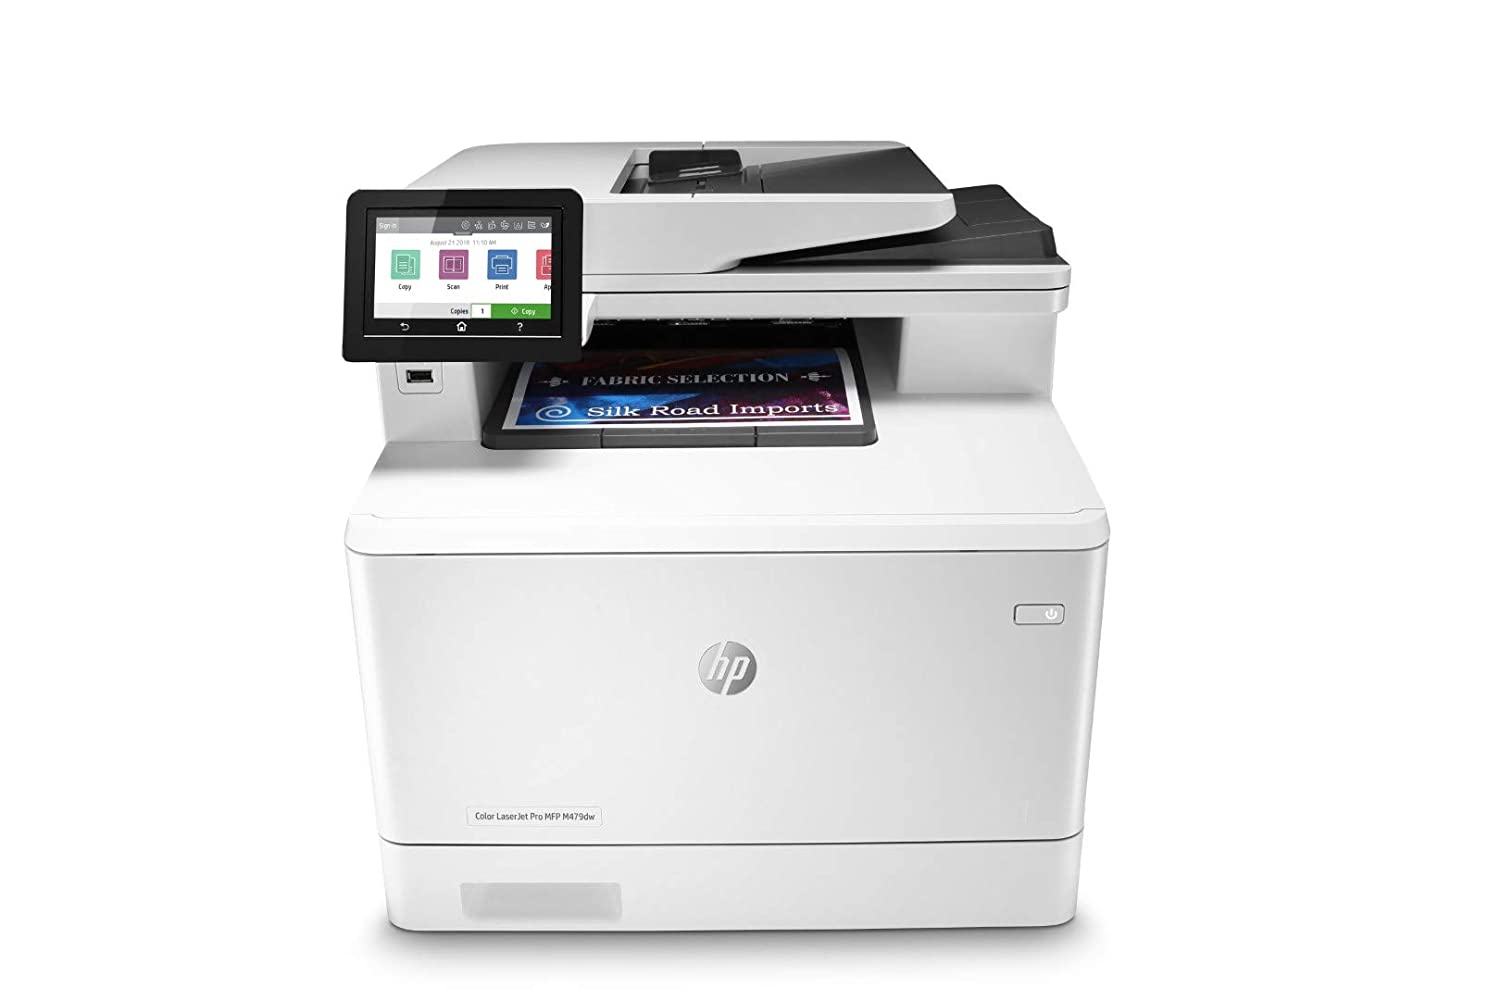 HP Color LaserJet Pro M479dw Impresora Láser Multifunción a Color (A4, hasta 27 ppm, de 750 a 4000 Páginas al Mes, 1 USB 2.0 , 1 USB Host, 1 Red ...